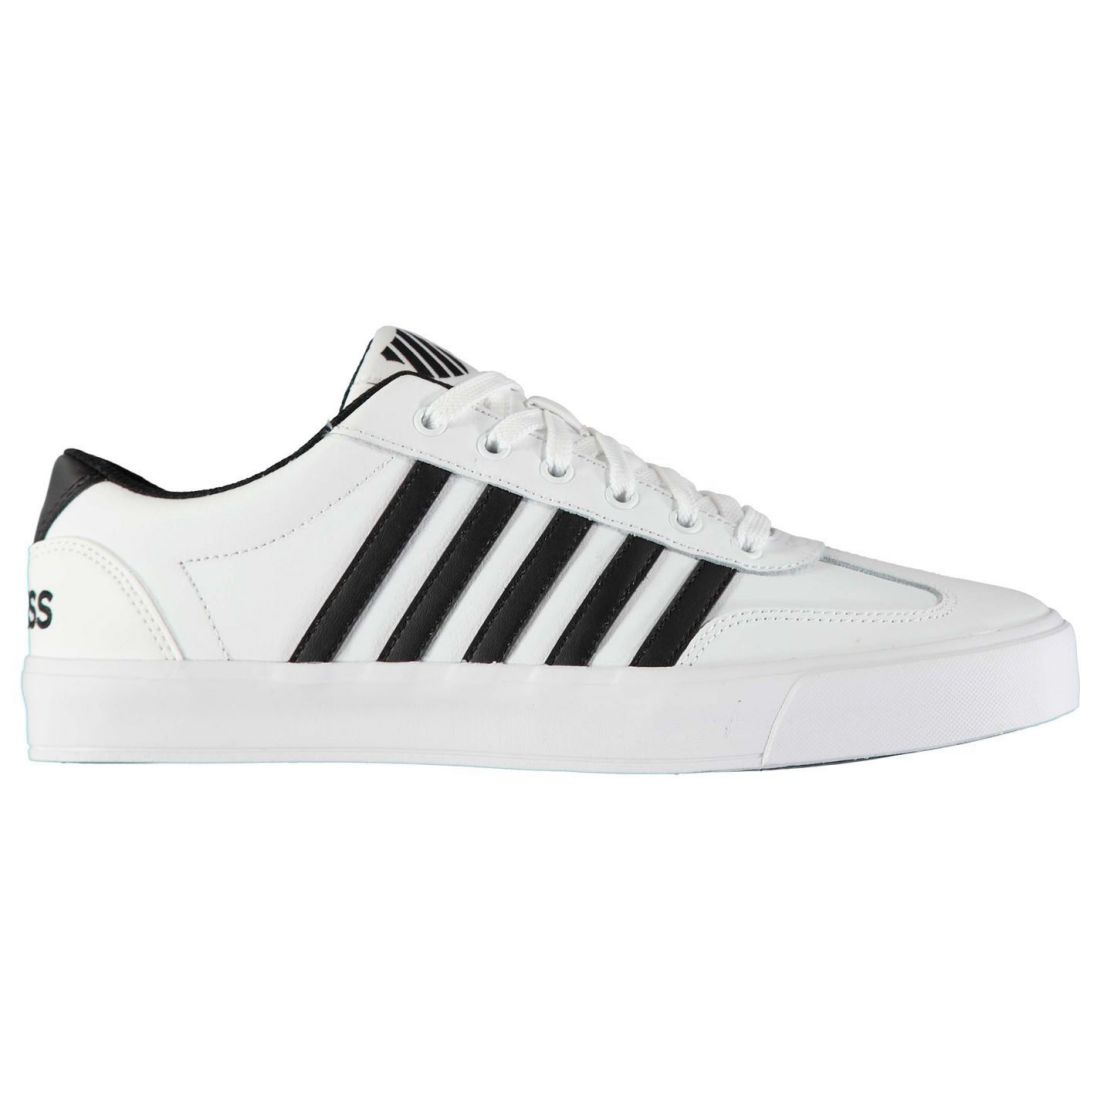 huge discount 06462 83f30 Details about K Swiss Addison Vulc Sneakers Mens Gents Court Laces Fastened  Padded Ankle